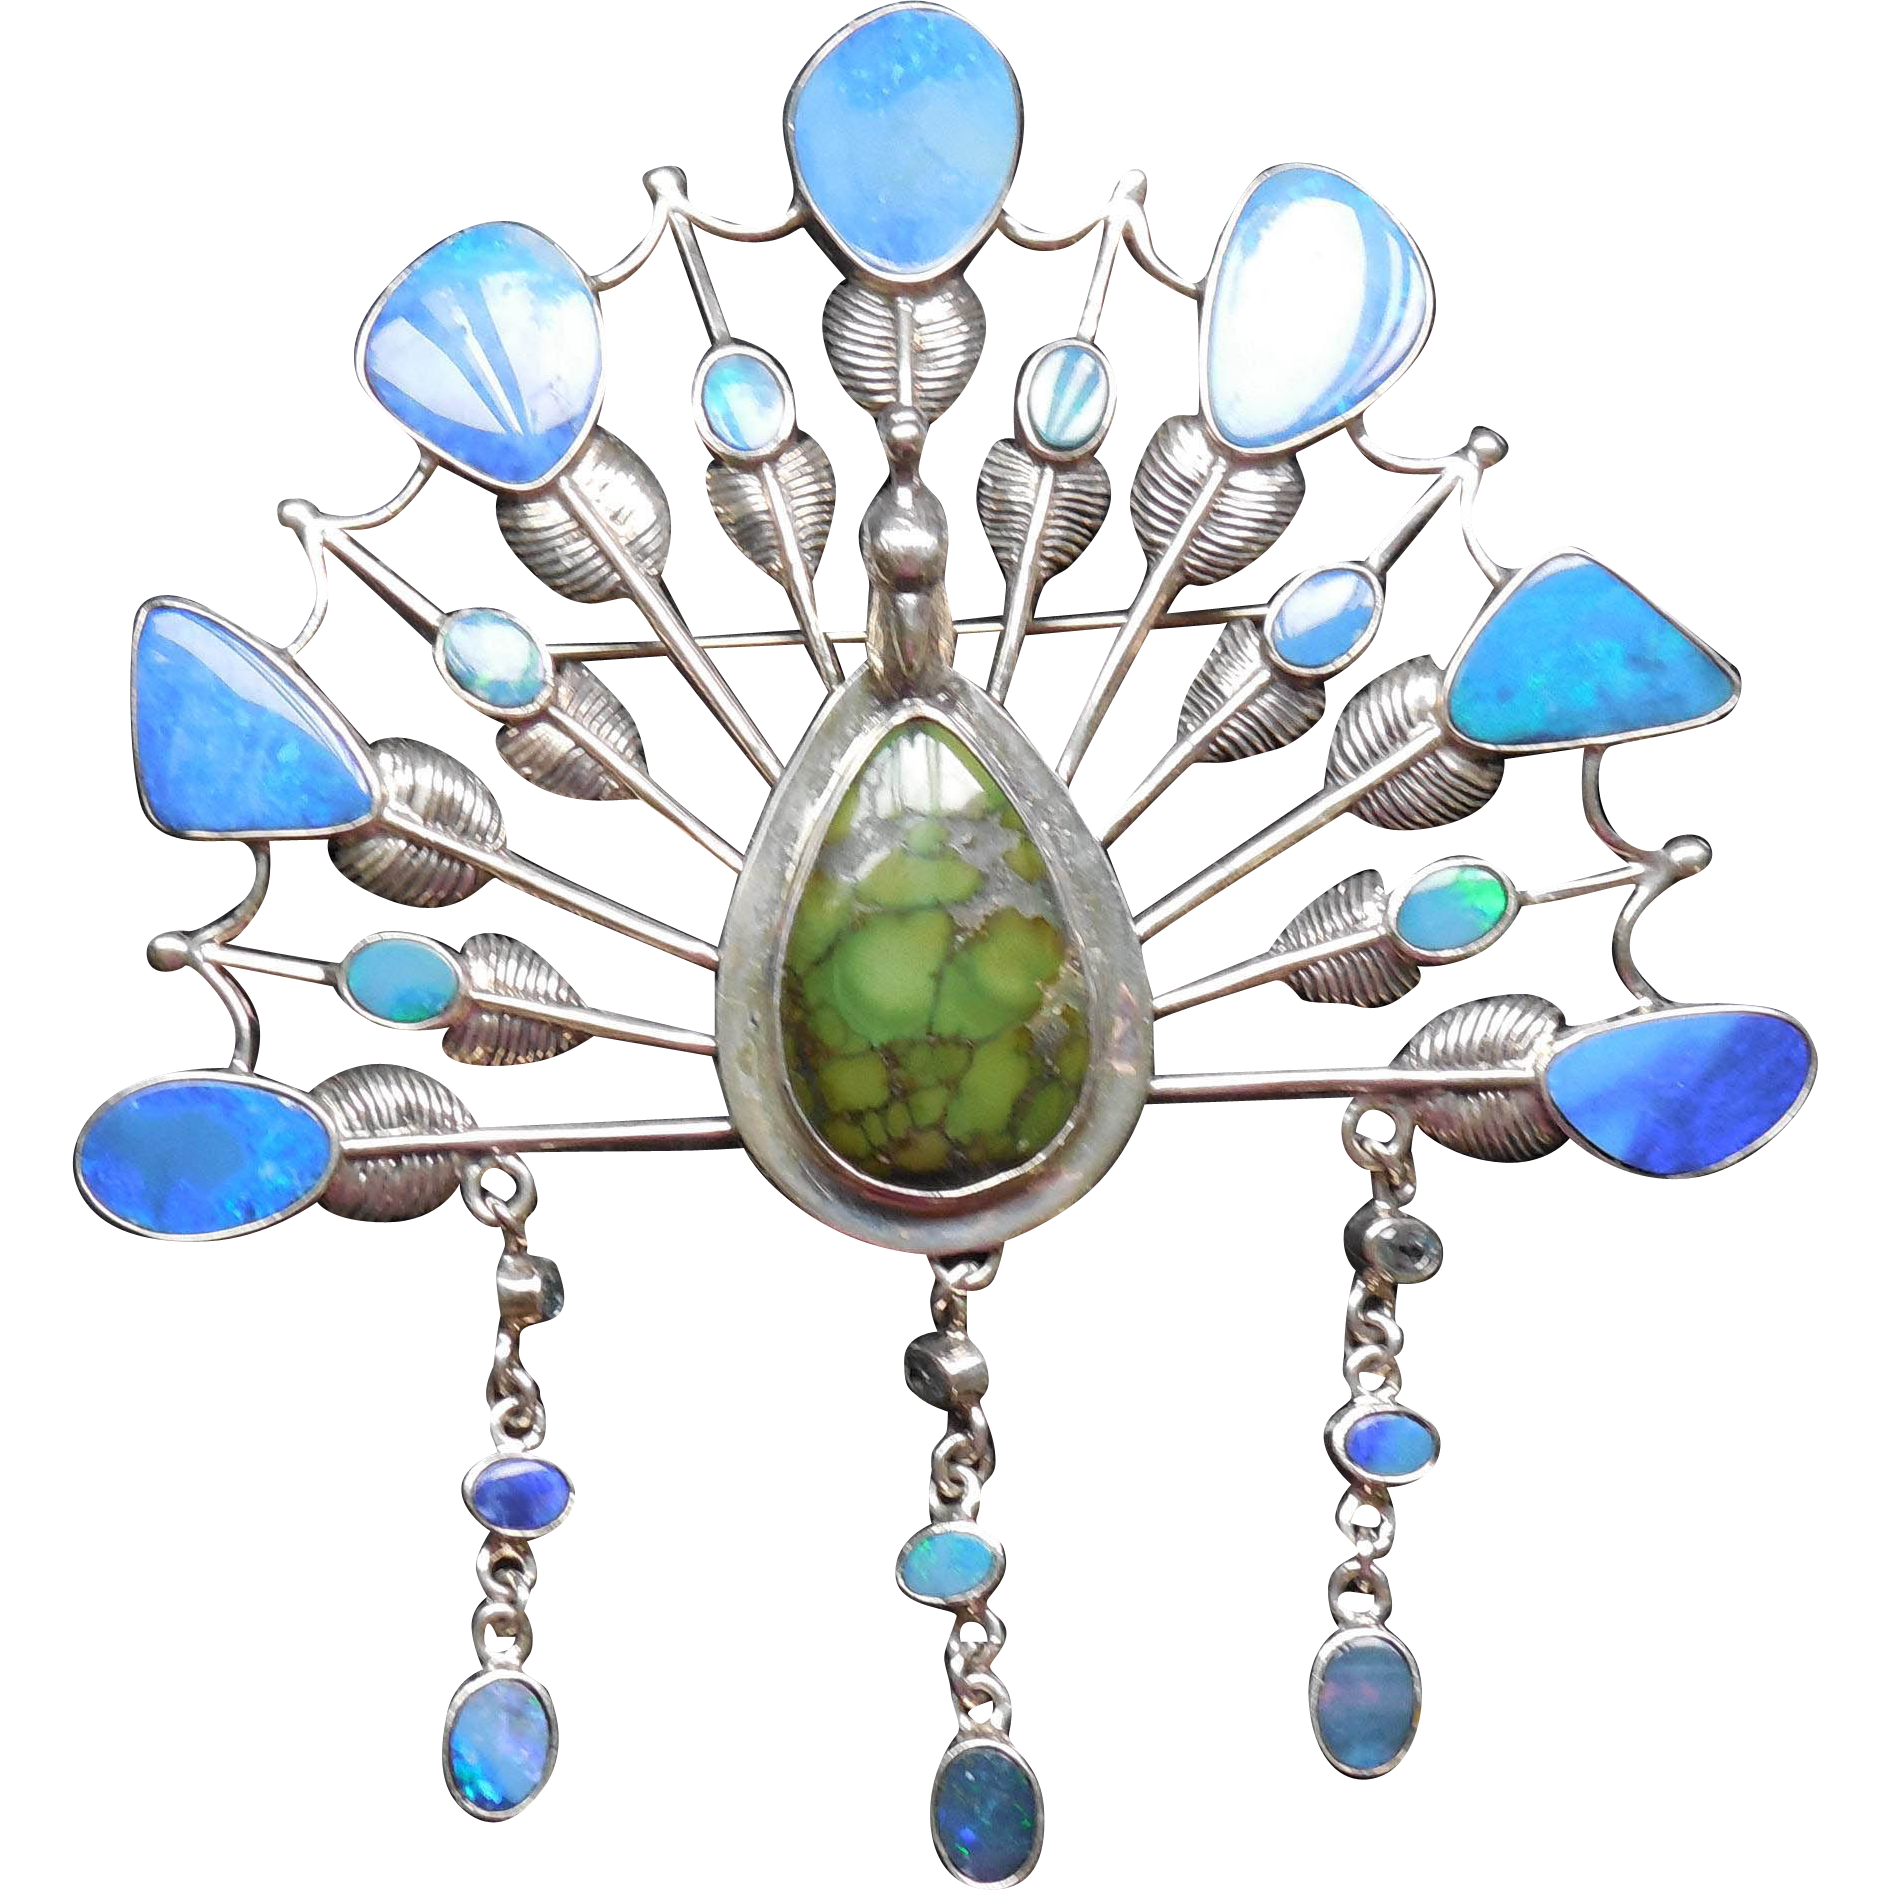 Huge Sterling Silver & Opal Dimensional Peacock Brooch - Statement Piece